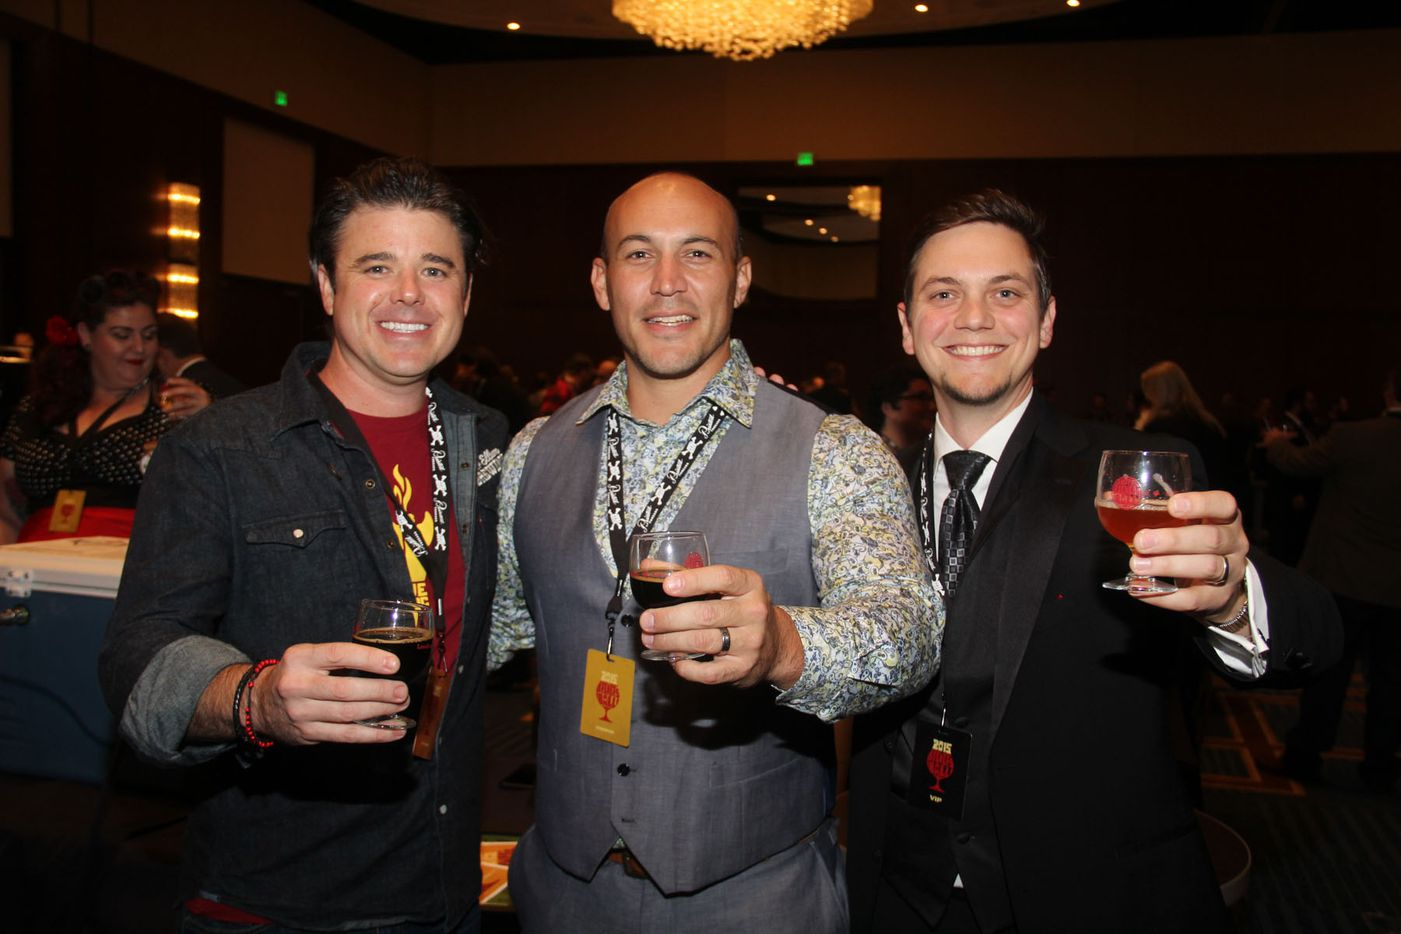 NTX Beer Week held its Second Annual Brewers Ball at the Renaissance Dallas Hotel on November 13, 2015. Zack Fickey, Garrett Marrero of Maui Brewing and Wim Bens.